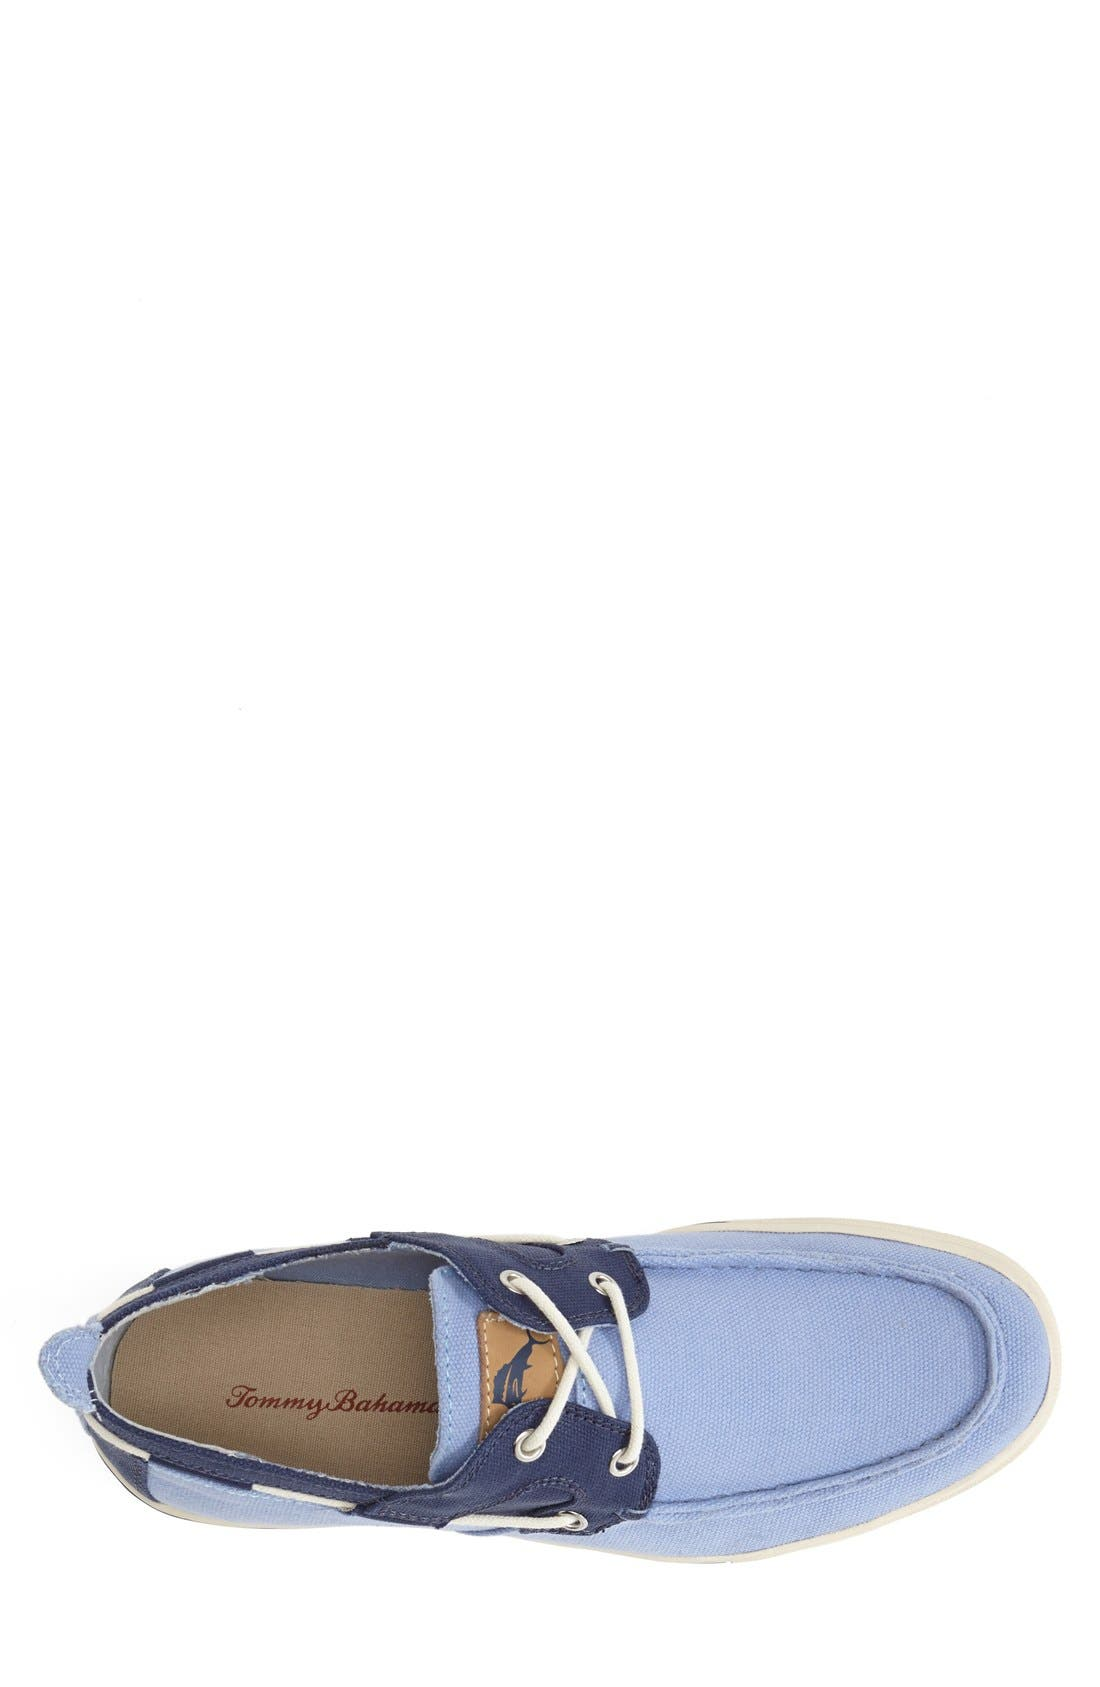 Alternate Image 3  - Tommy Bahama 'Calderon' Boat Shoe